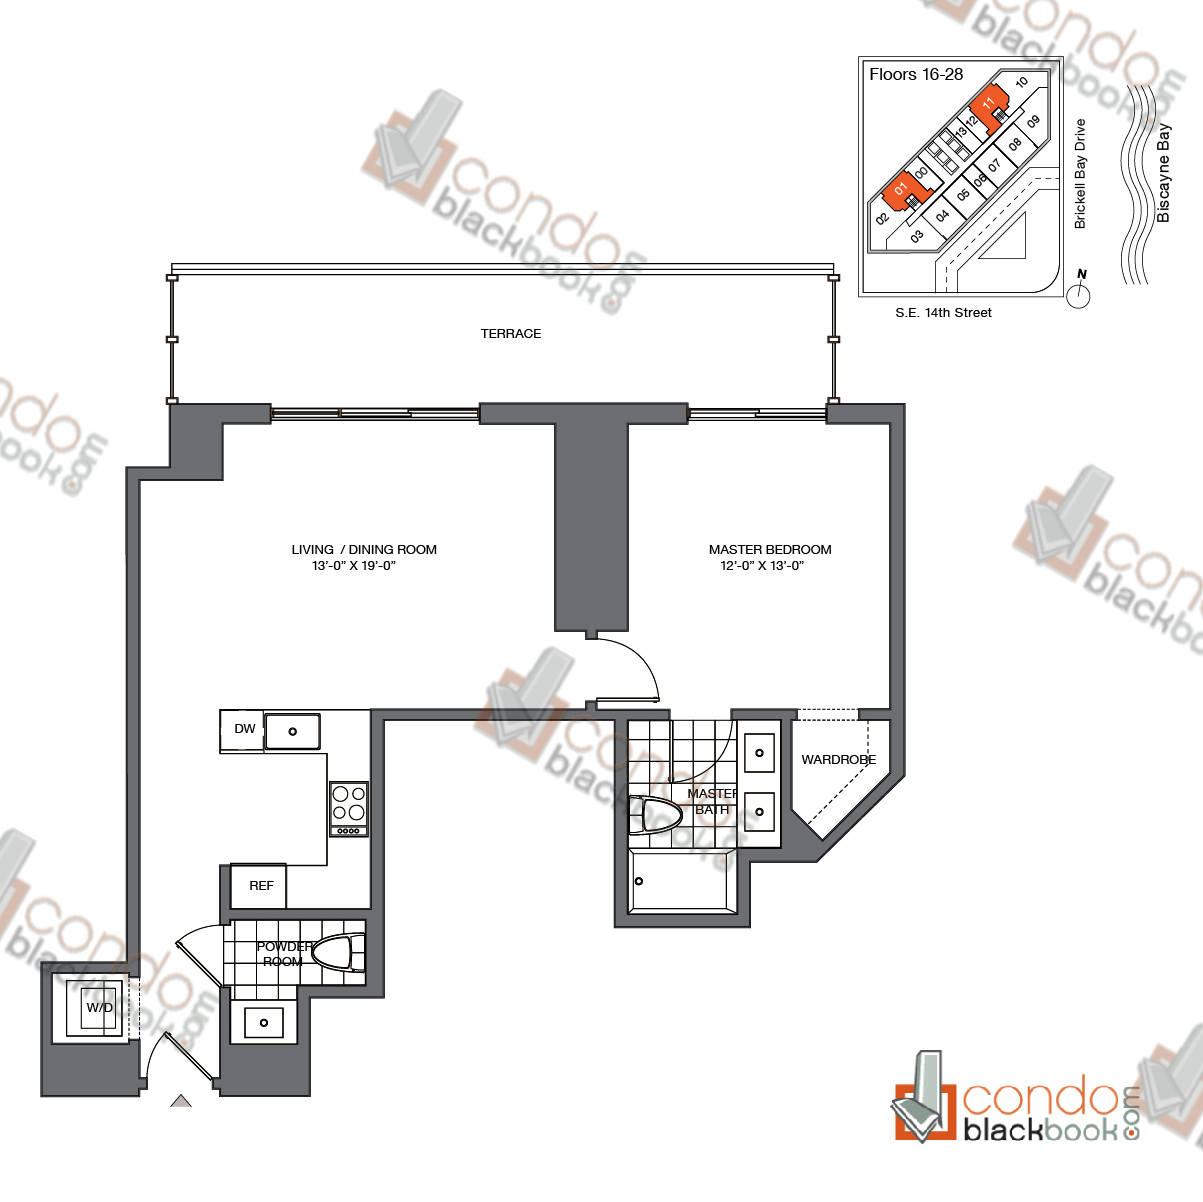 Floor plan for Brickell House Brickell Miami, model A5_16-28, line 01, 11, 1/1 bedrooms, 790 sq ft